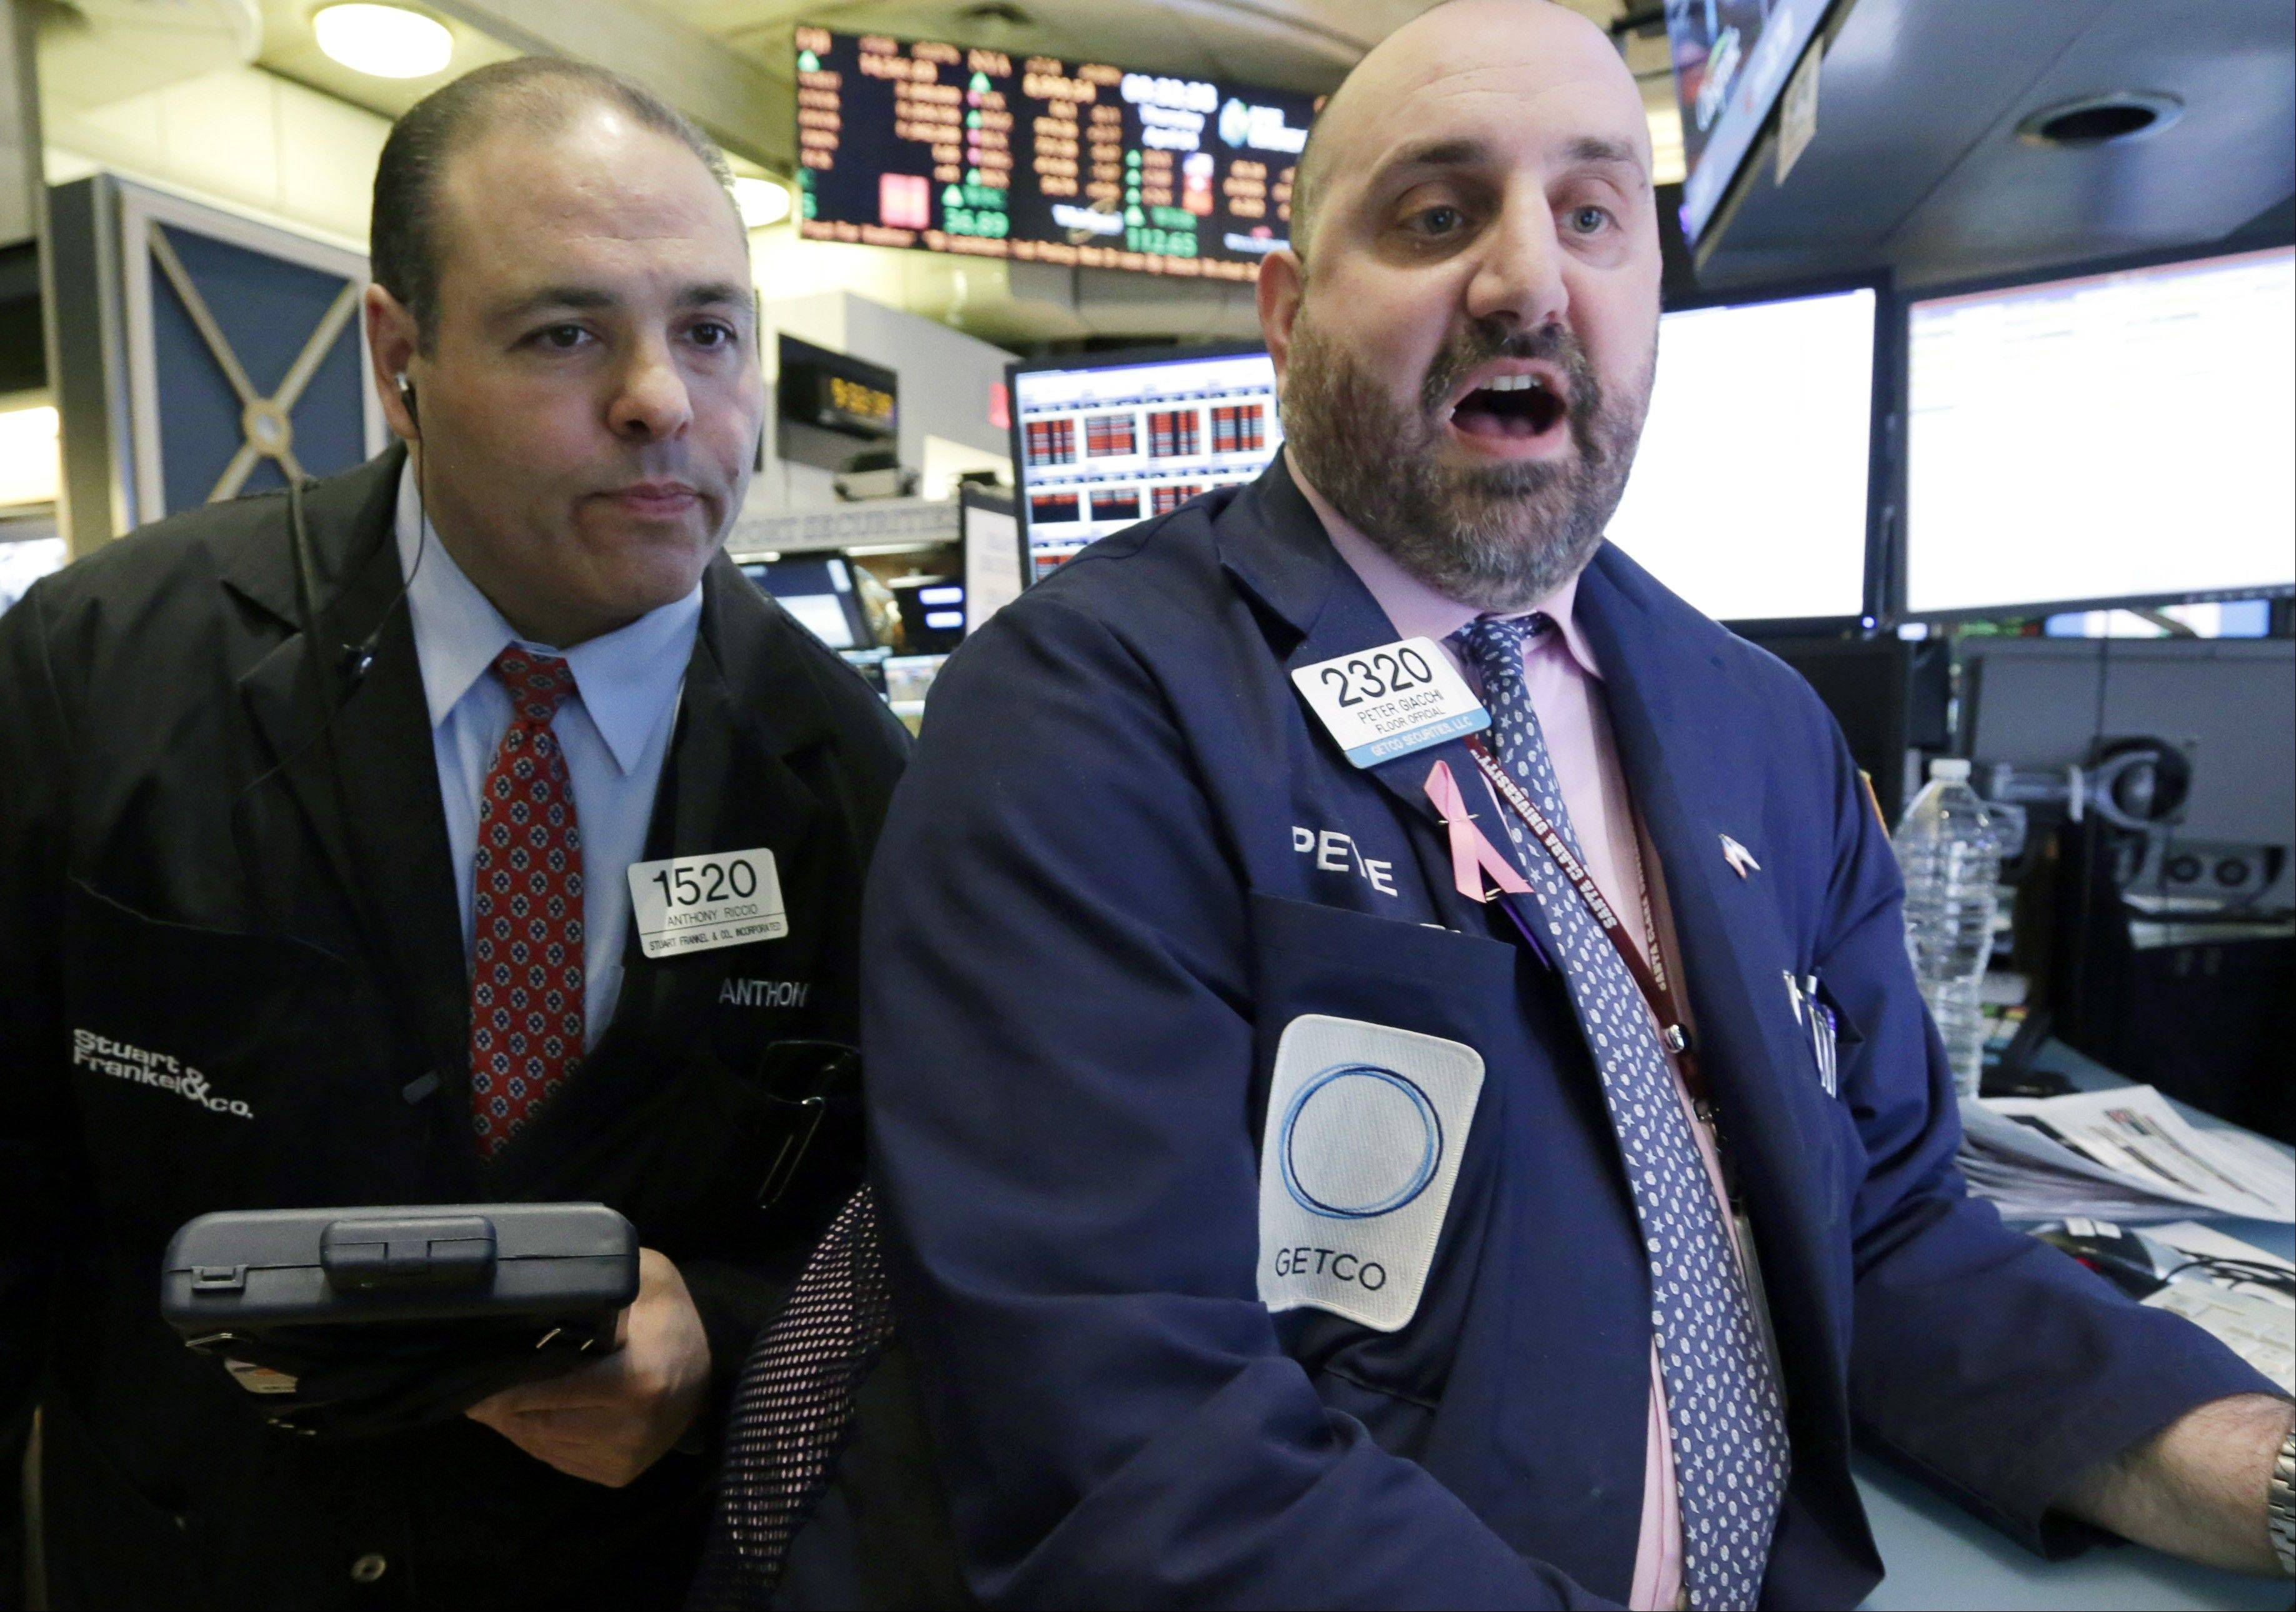 What stocks do the pros like? They want stocks are cheap. That can be a $10 stock or a $100 stock -- what matters is whether the stock price still has room to grow. They scrutinized cash flow and debt levels to get an idea of what a company is really worth. And they liked stocks that paid dividends, which are cash payouts that companies can give to shareholders each quarter.